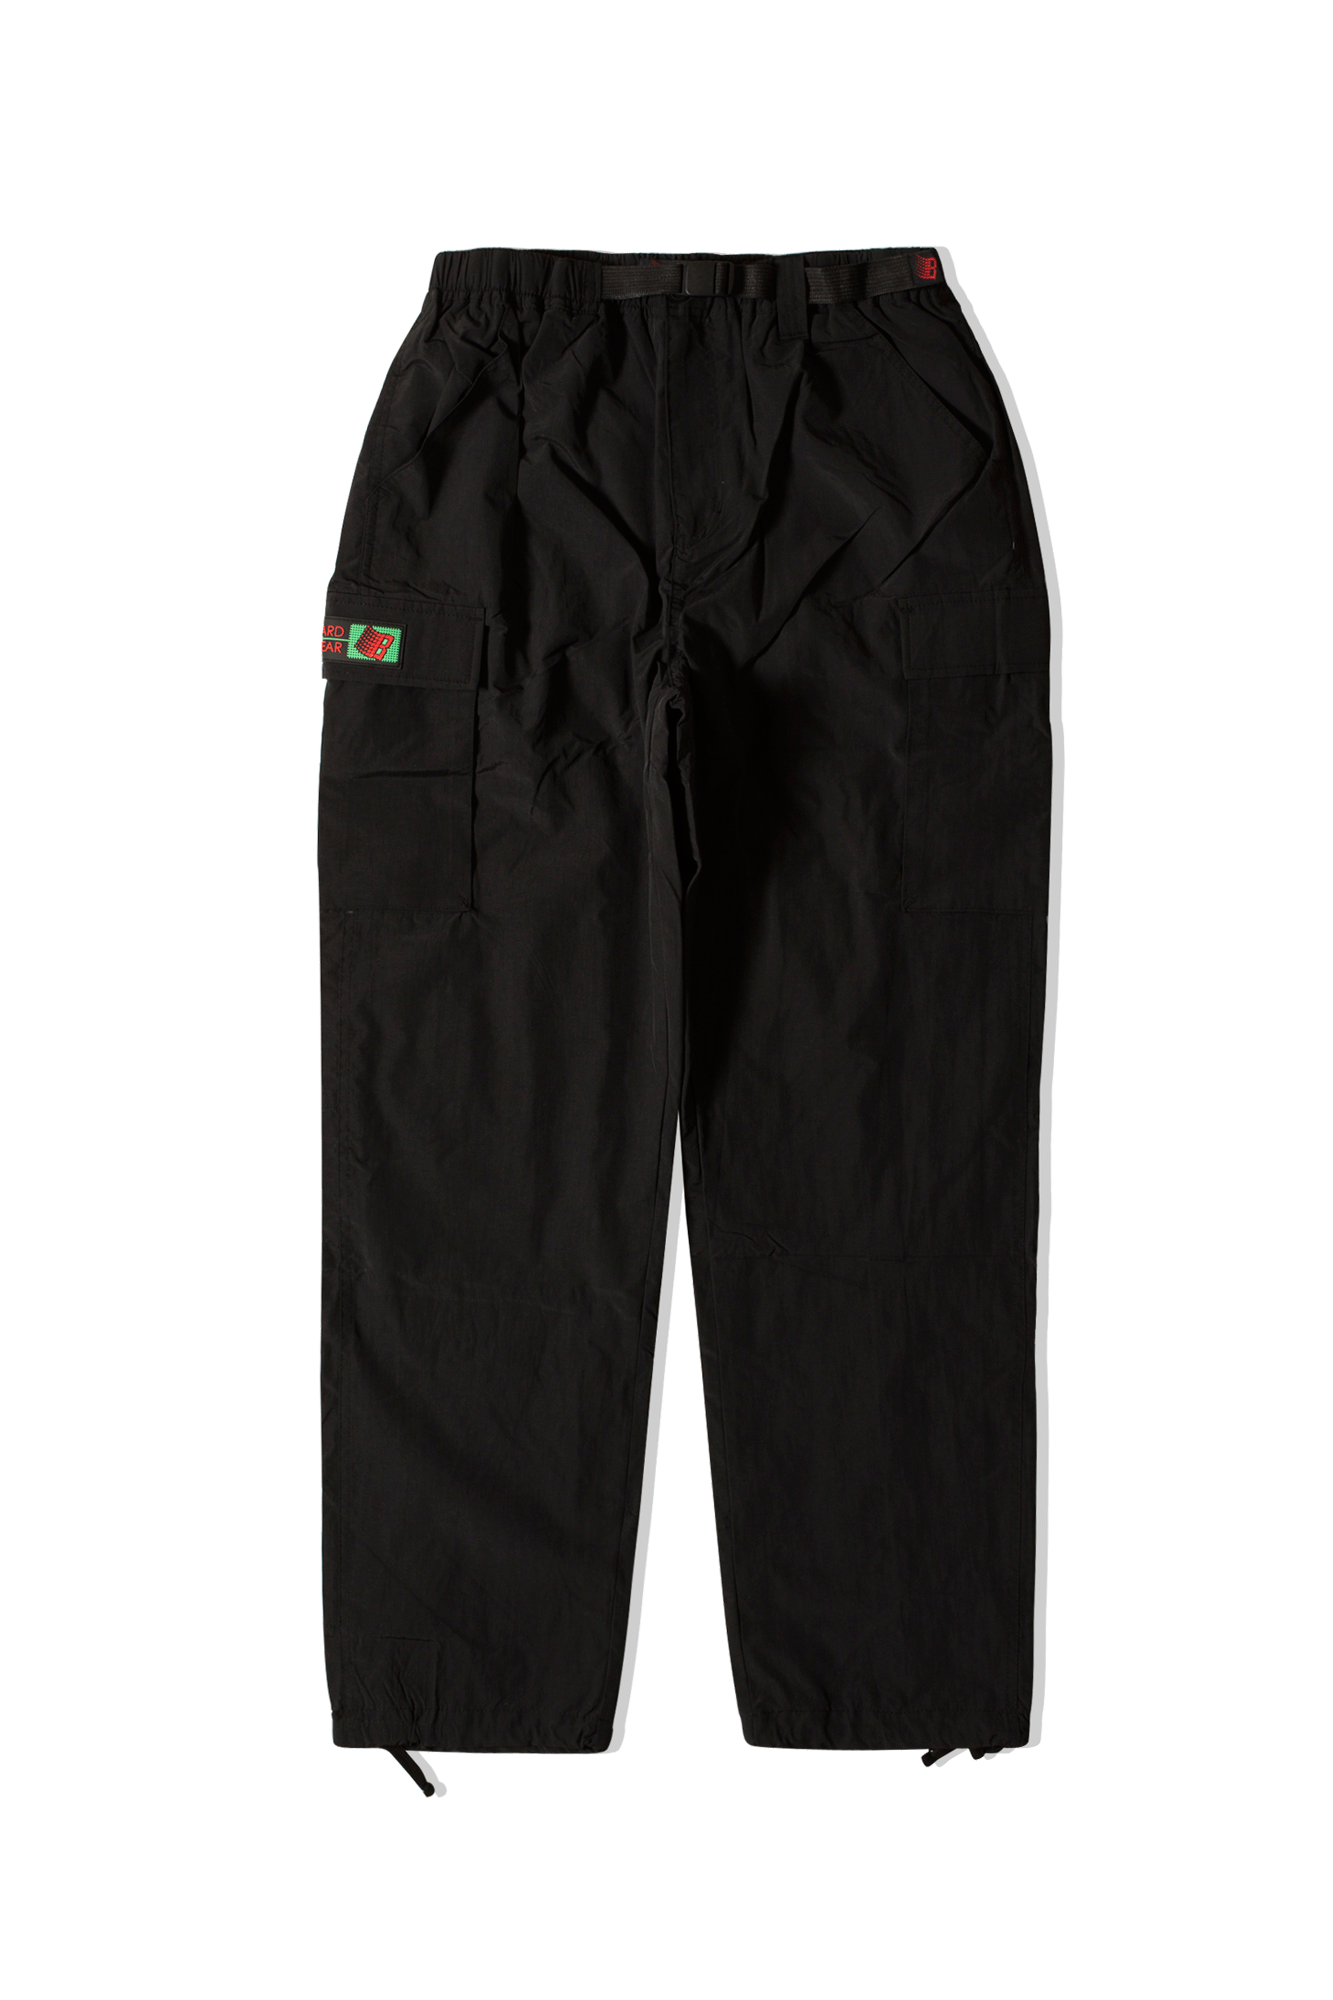 Hard Ware Pants Black